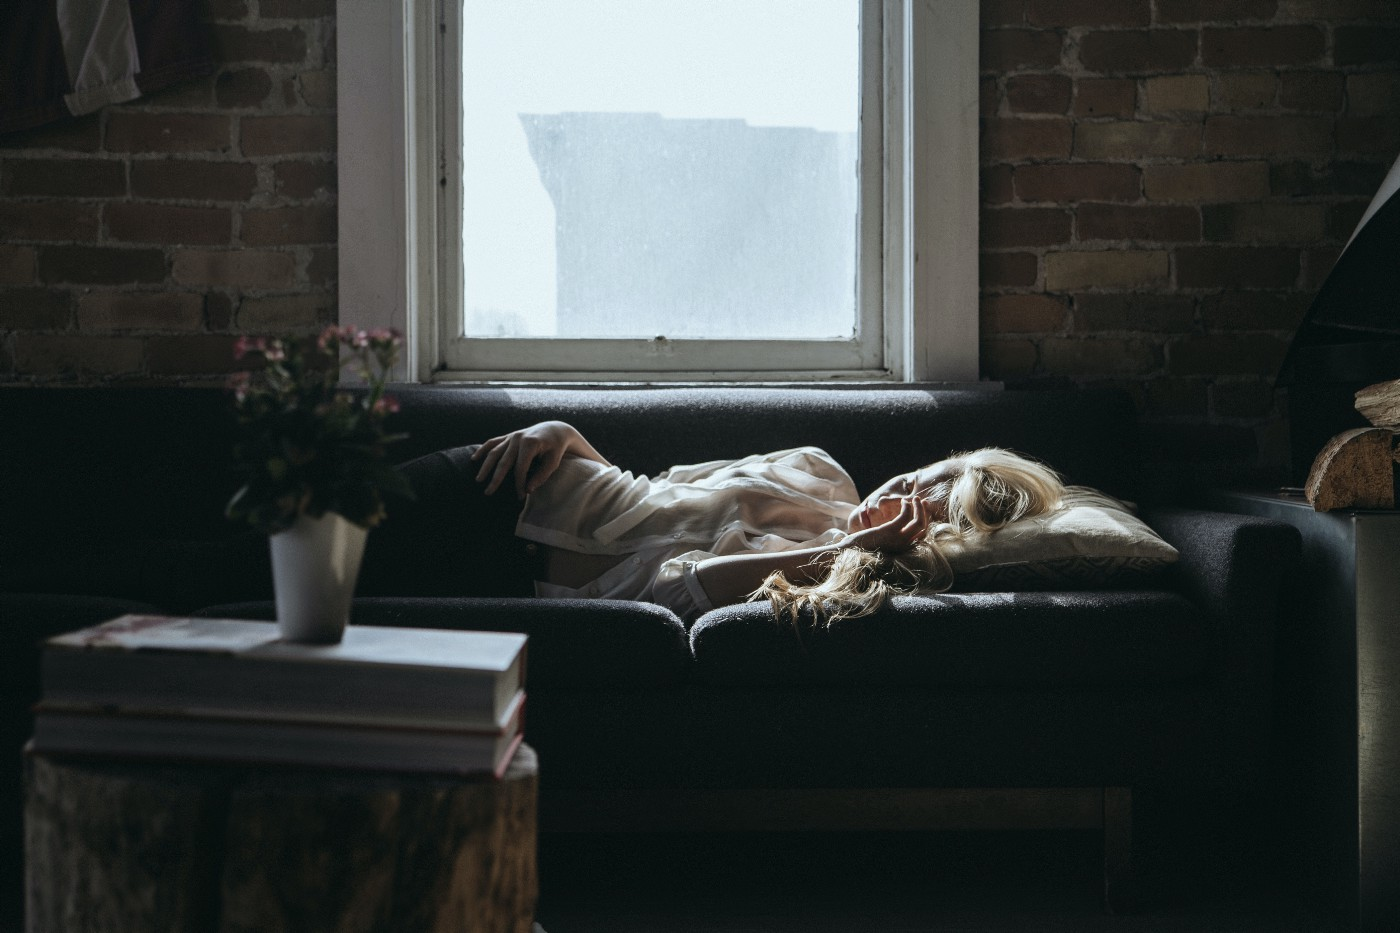 Woman dejectedly lying on a couch with a window behind her.